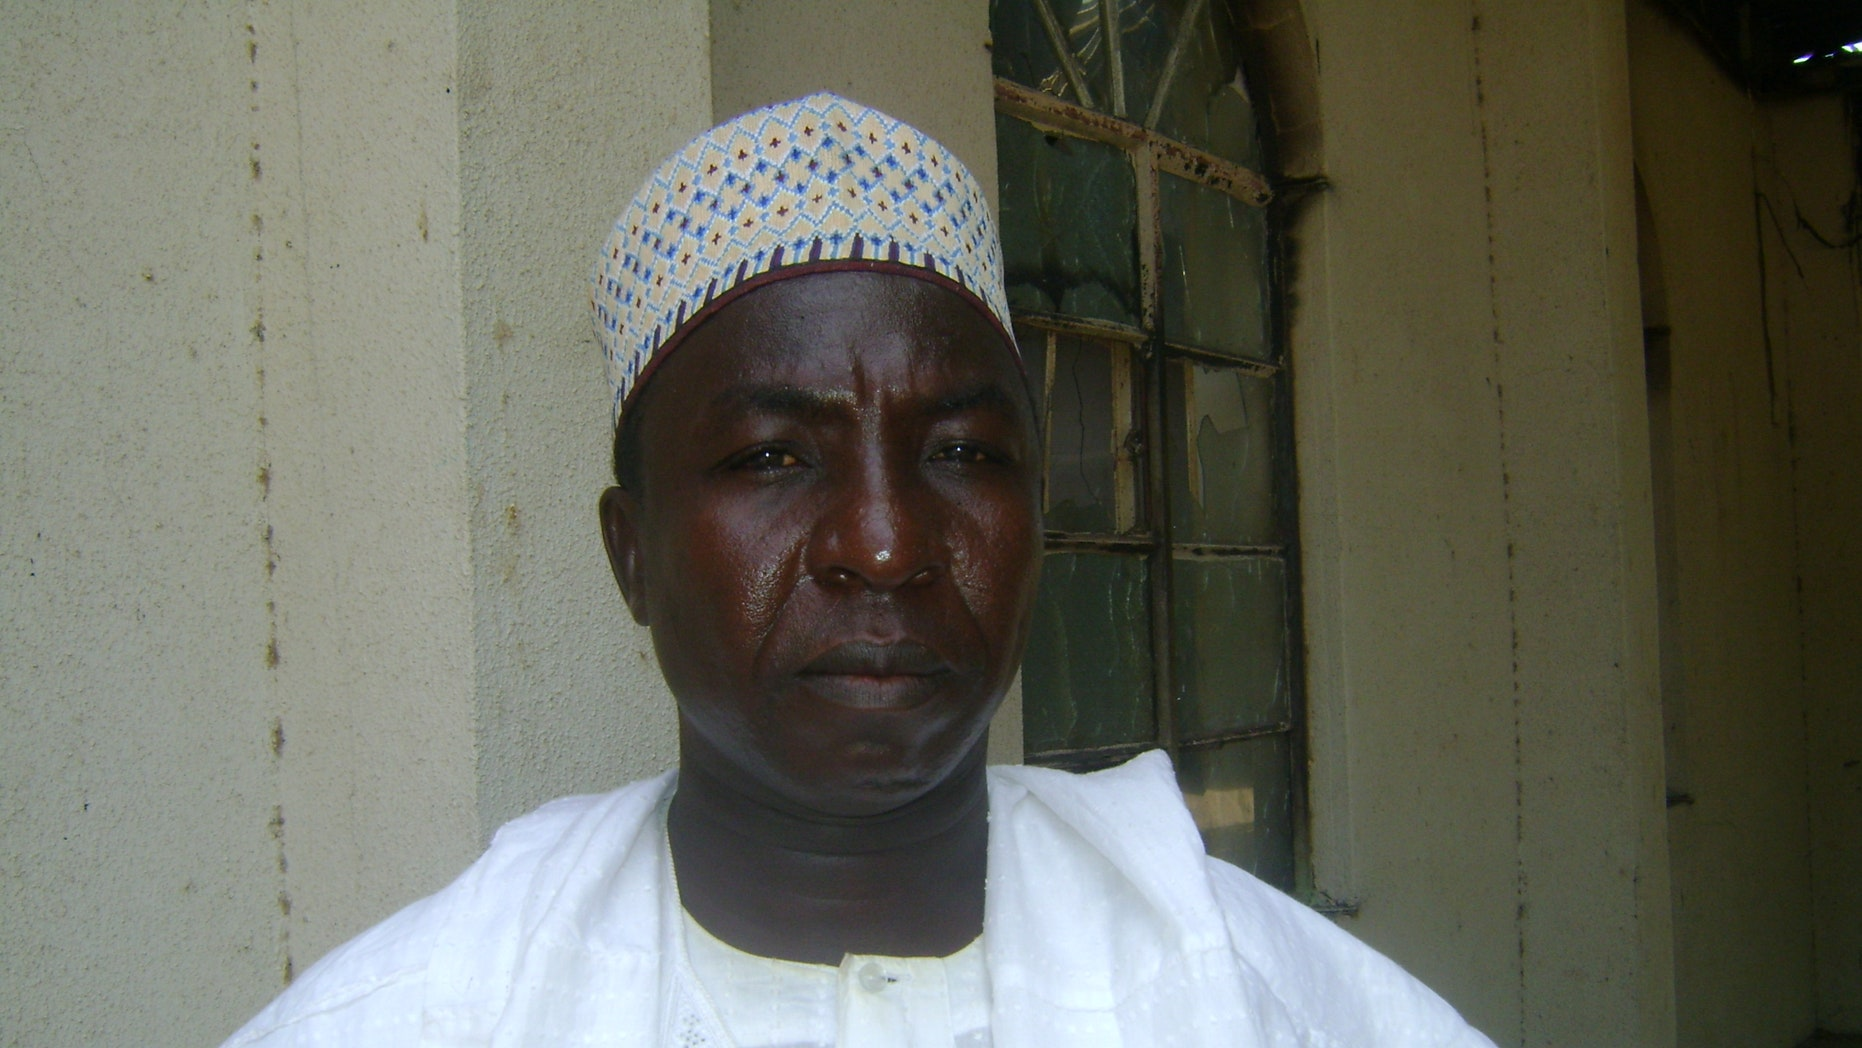 Rev. Faye Pama Musa, 52, was one of 2,123 Christians killed last year due to their faith, compared to 1,201 in 2012. More than half of those reported killings (1,213) occurred in Syria, followed by Nigeria (612) and Pakistan (88). (Courtesy: Open Doors)